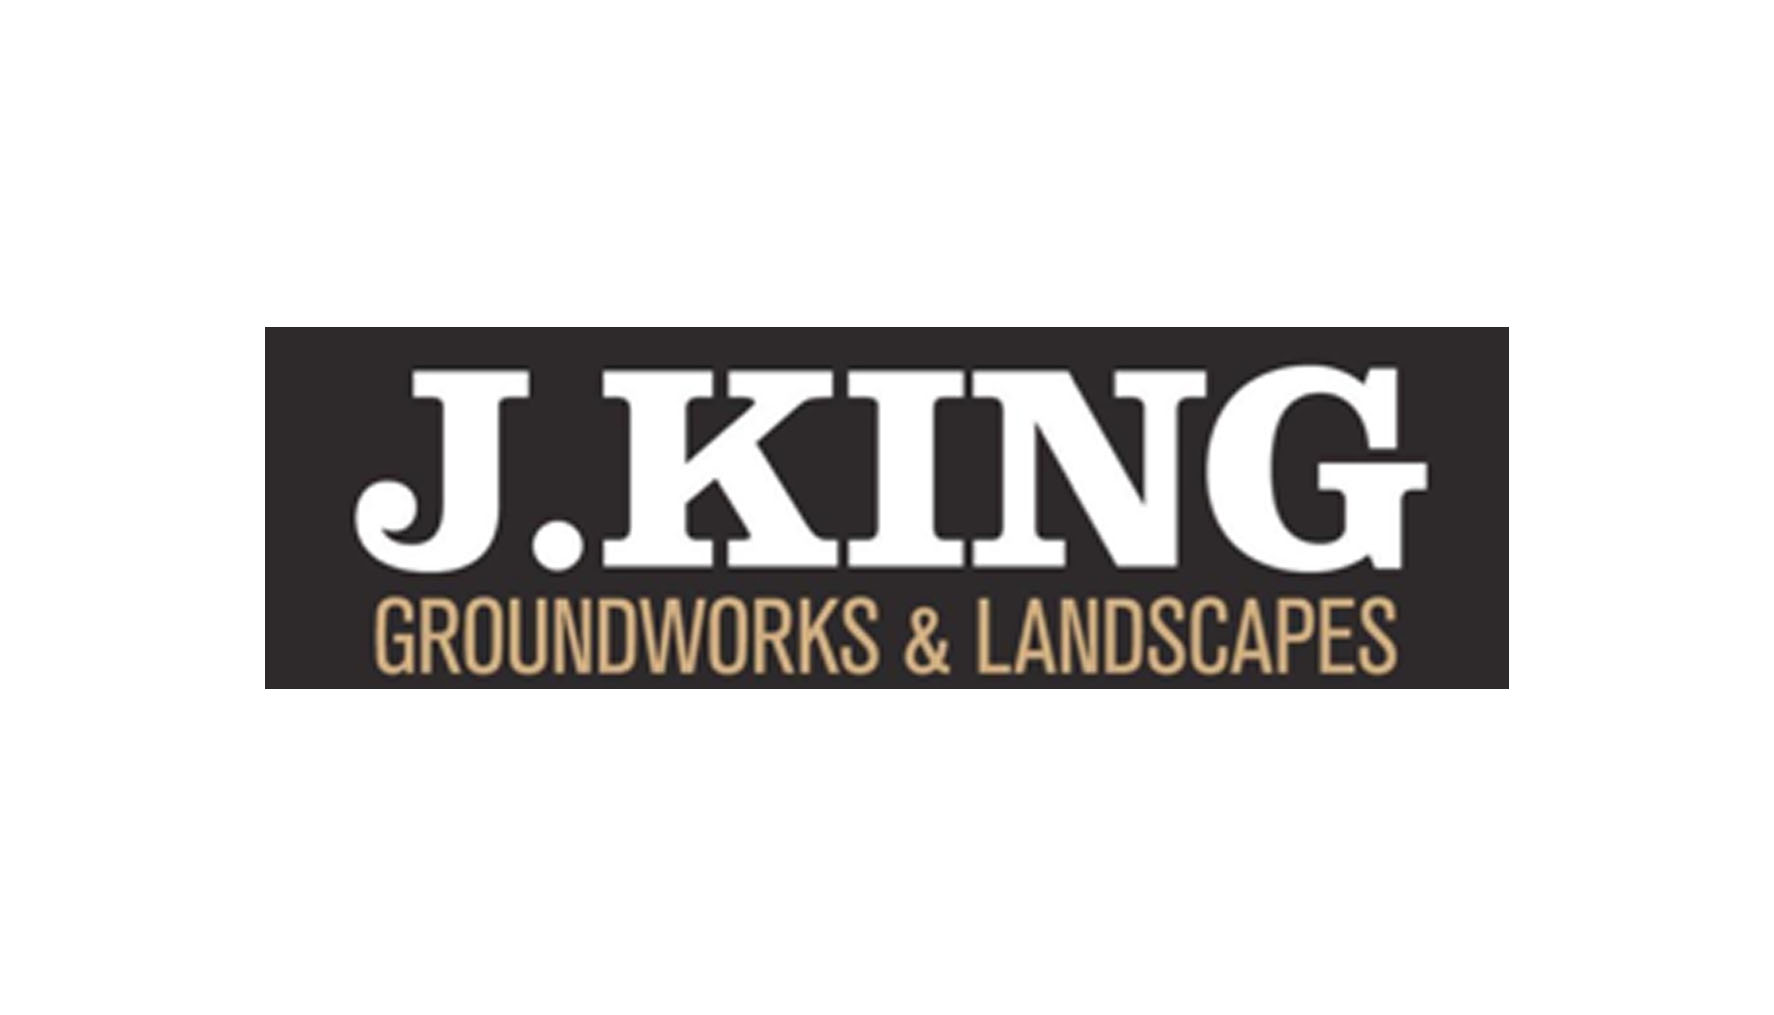 J King Groundworks & Landscapes